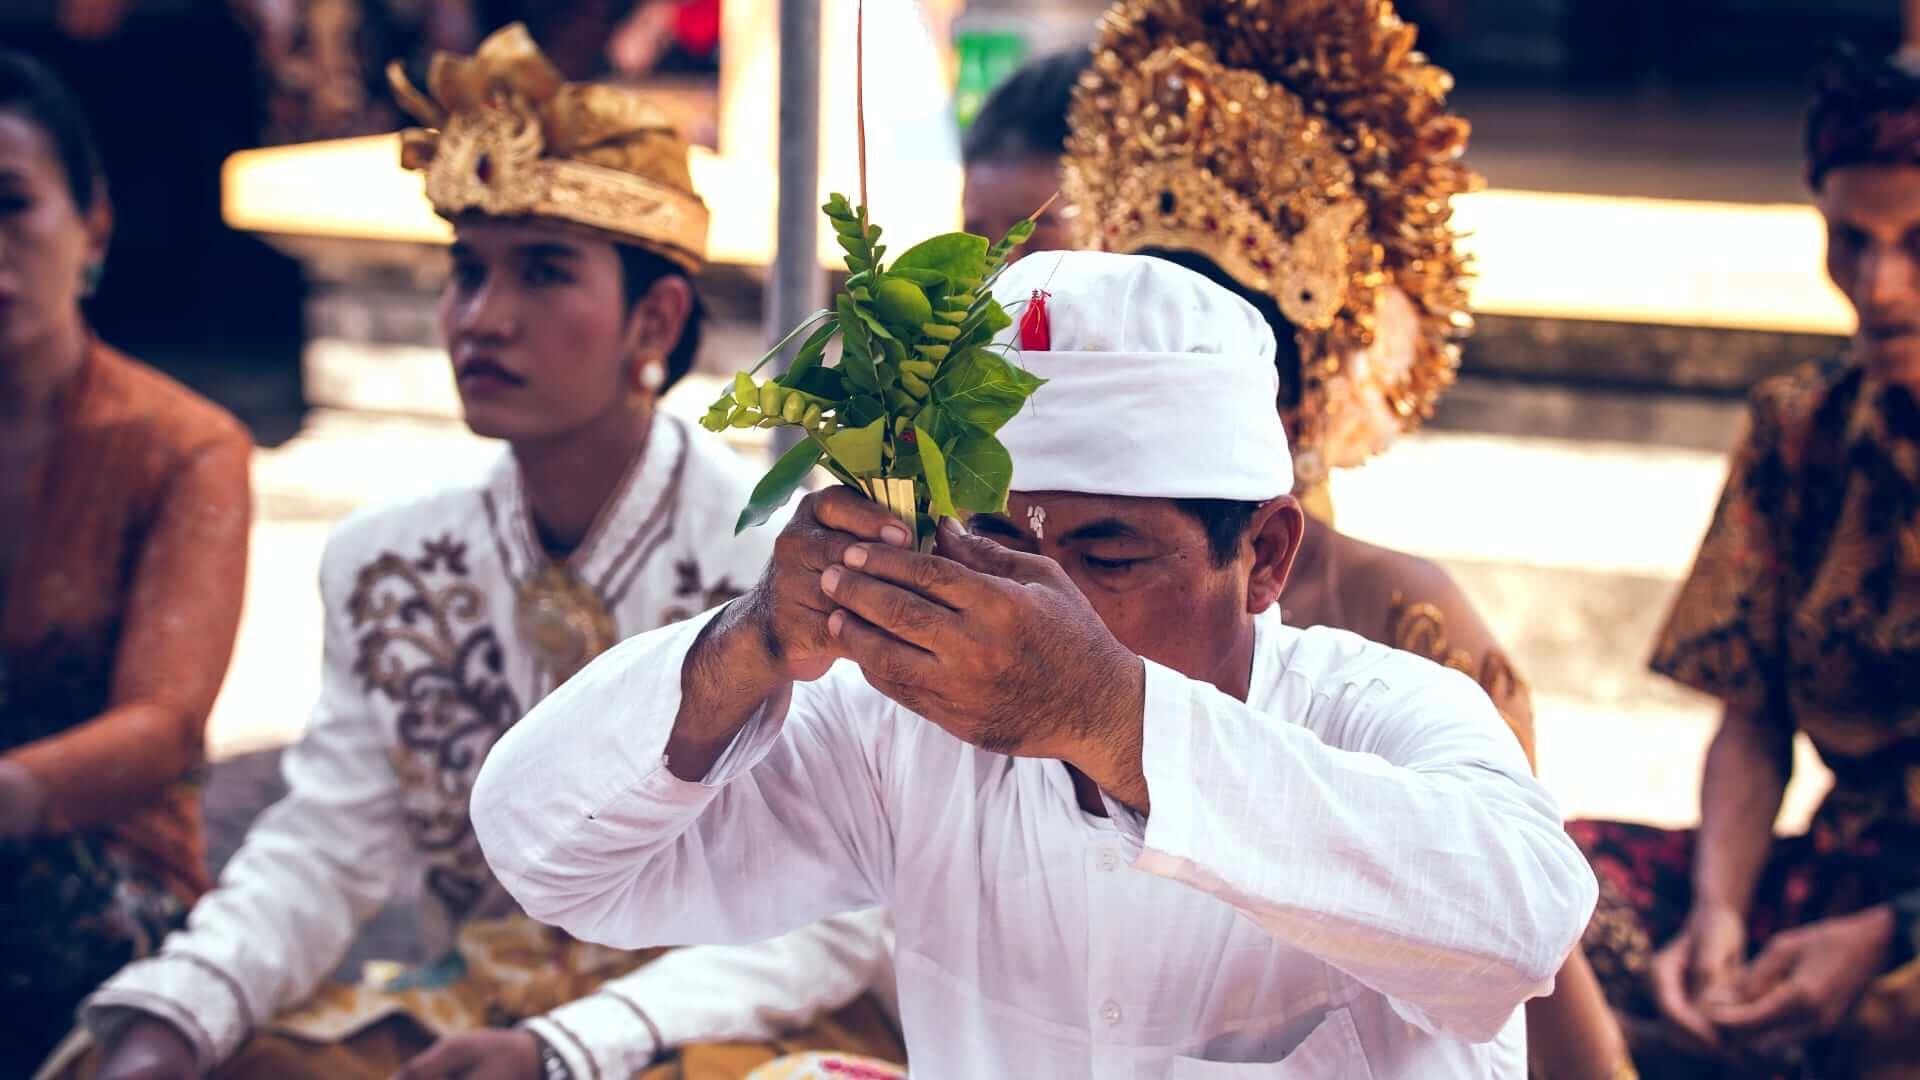 Balinese men and women praying during a religious event.